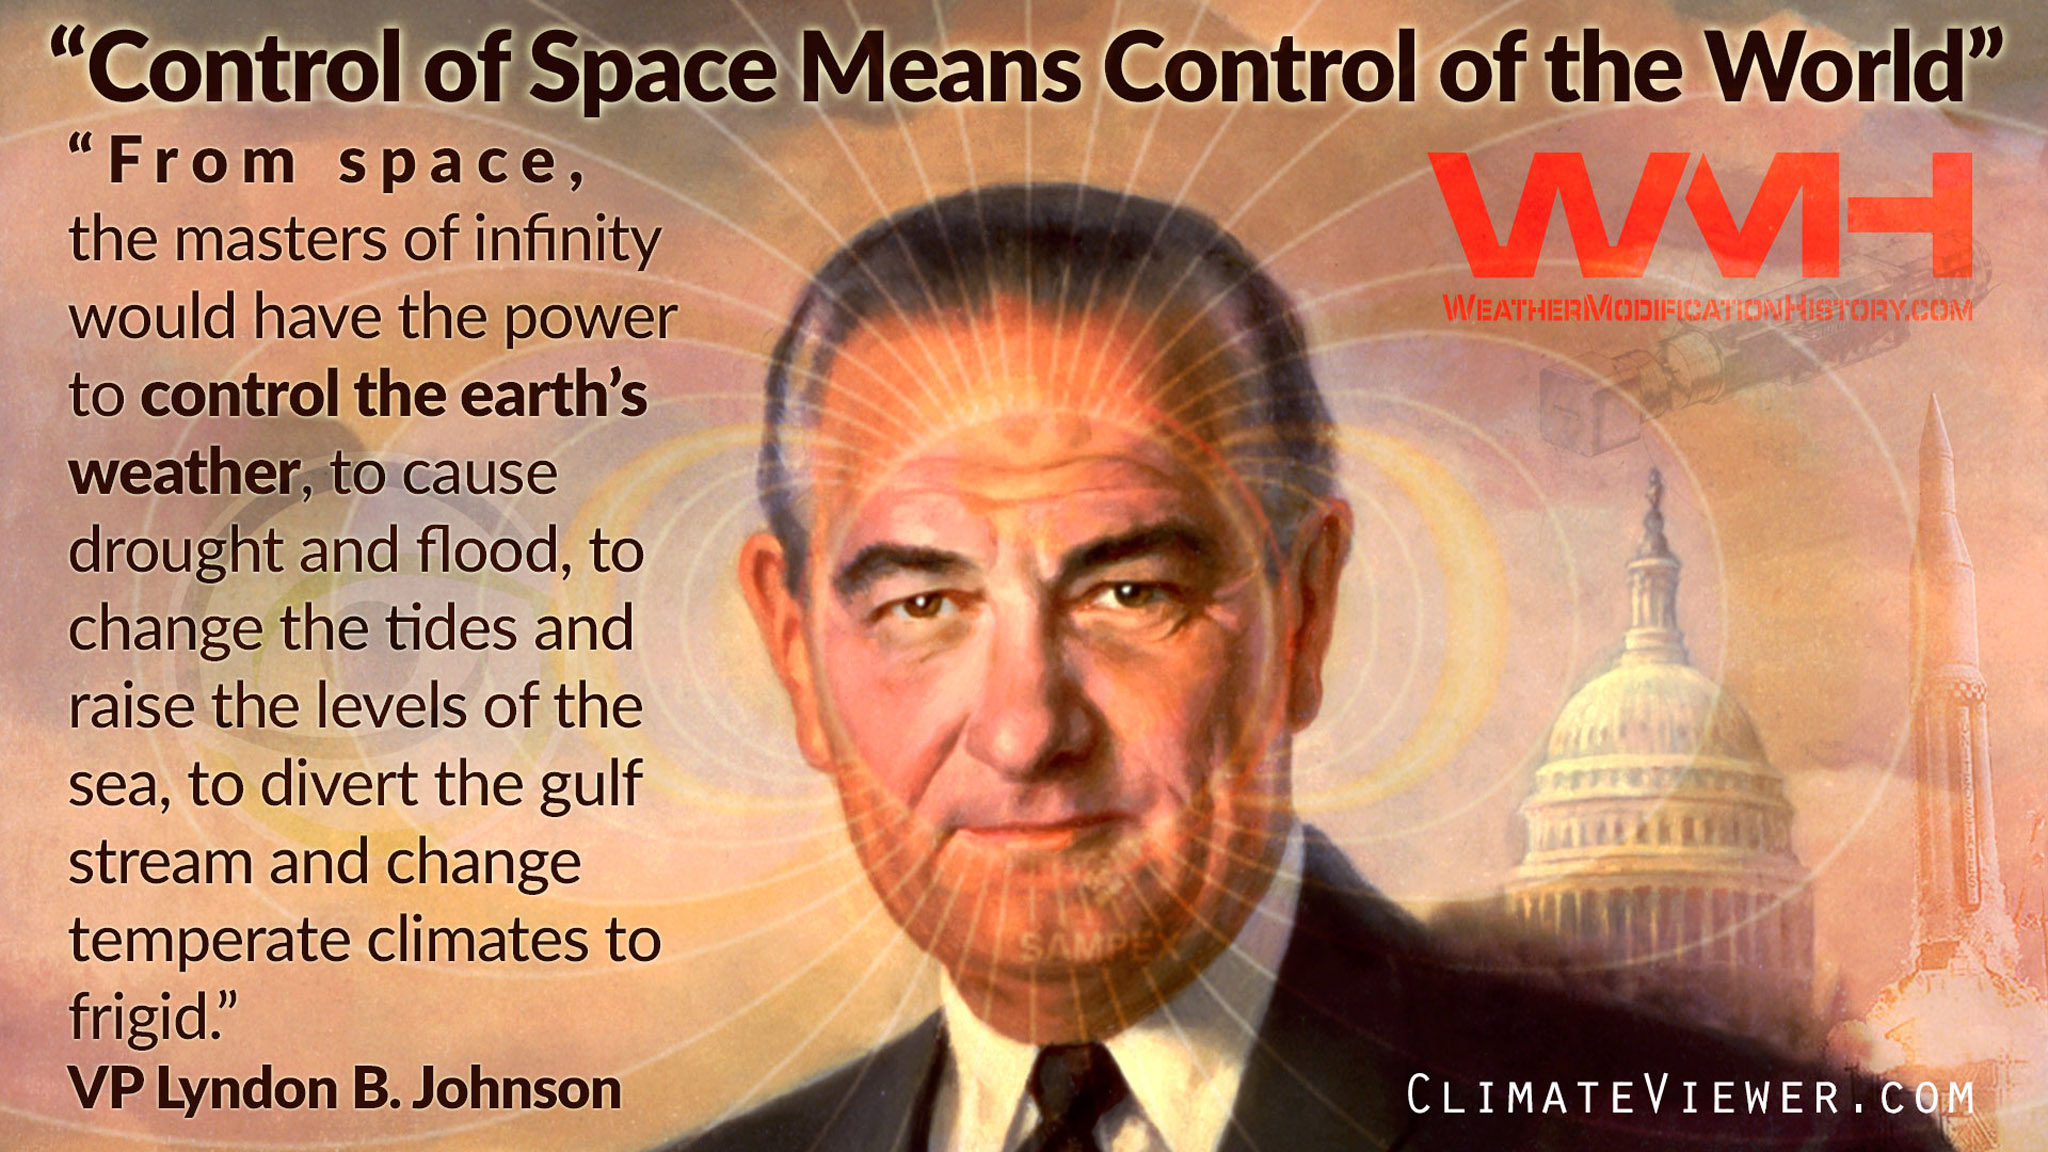 lyndon-johnson-control-space-world-weather-modification-geoengineering-1962